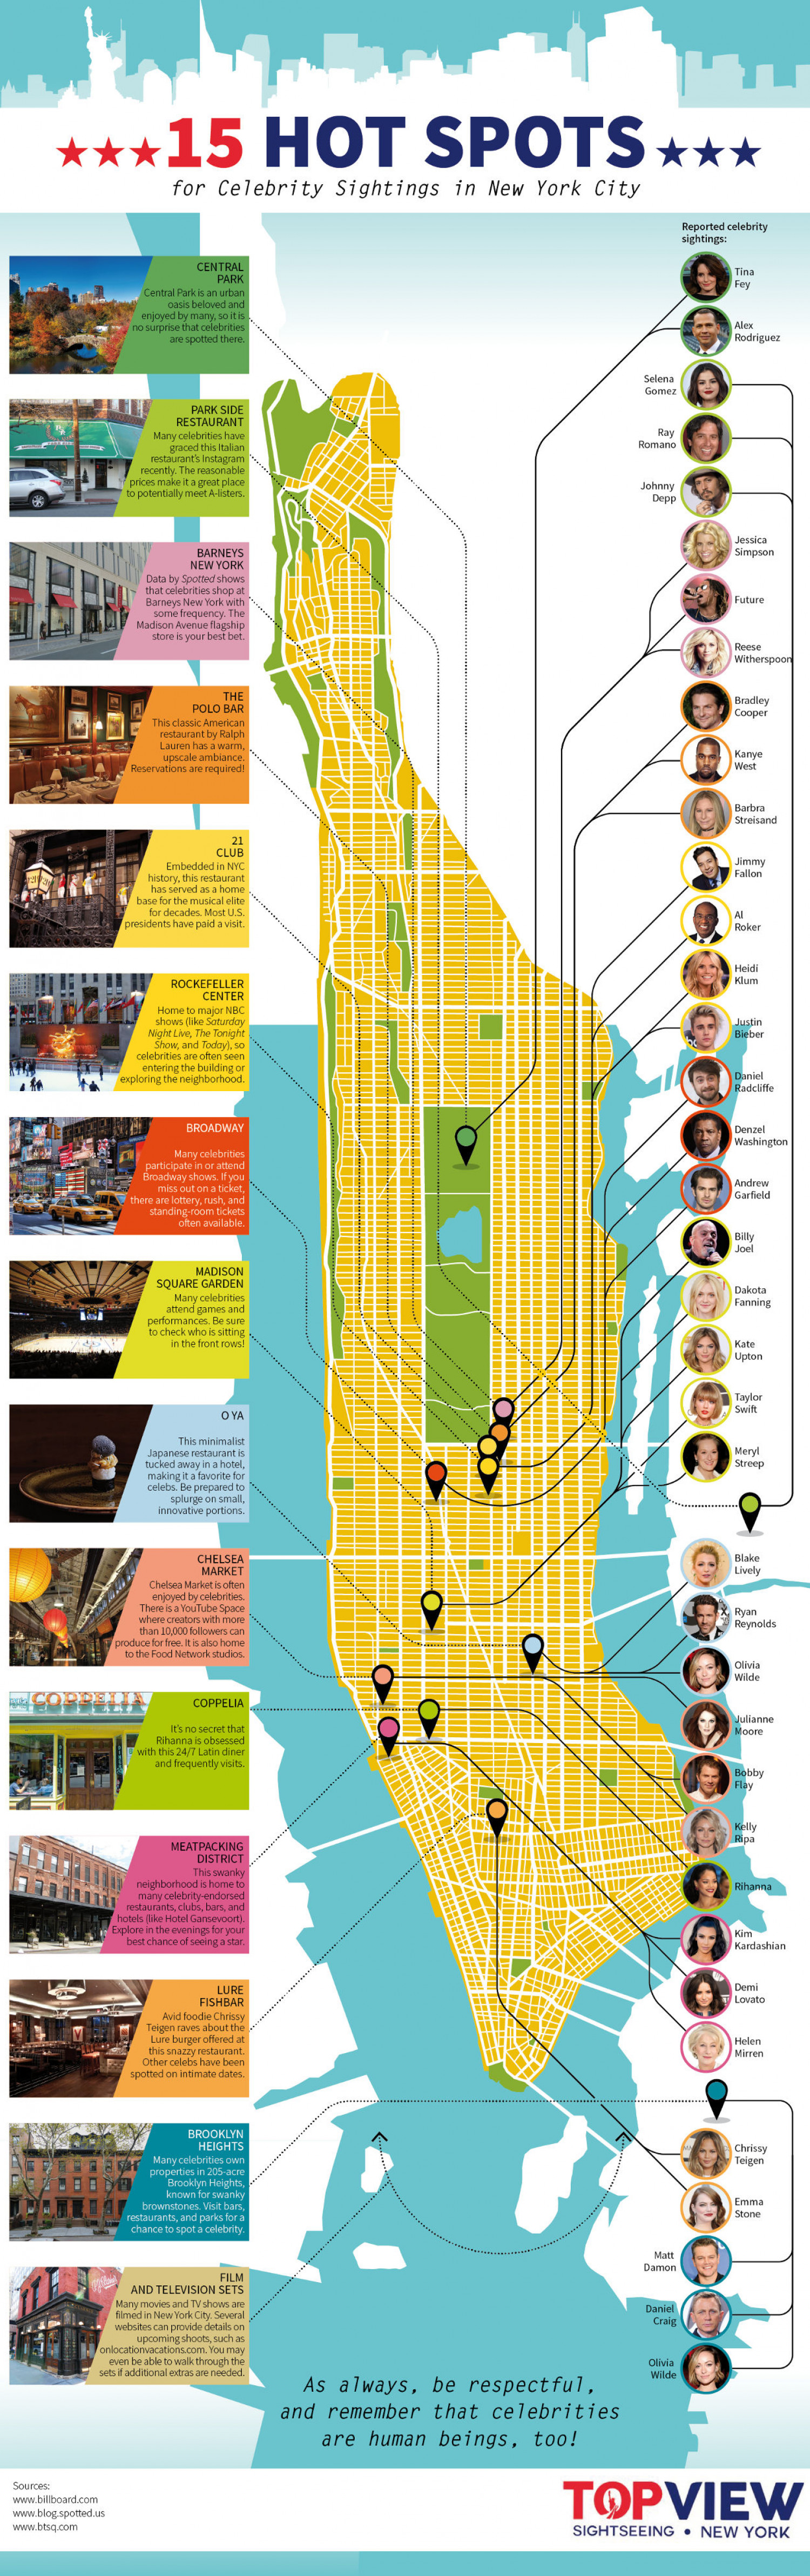 15 Hot Spots for Celebrity Sightings in New York City  Infographic